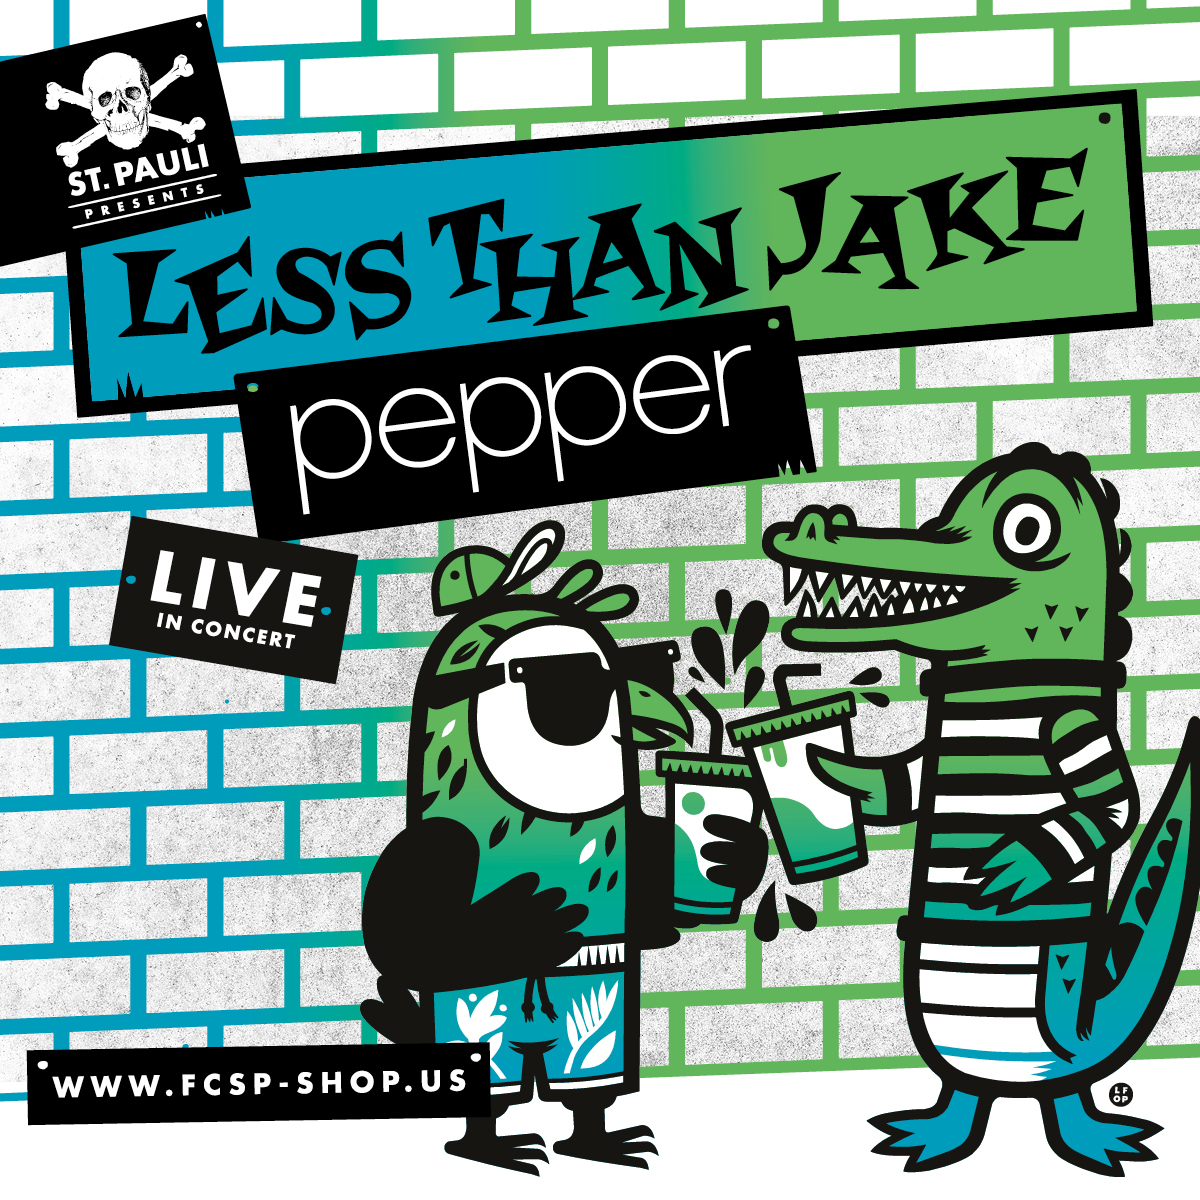 ST. PAULI PRESENTS: Less Than Jake & Pepper